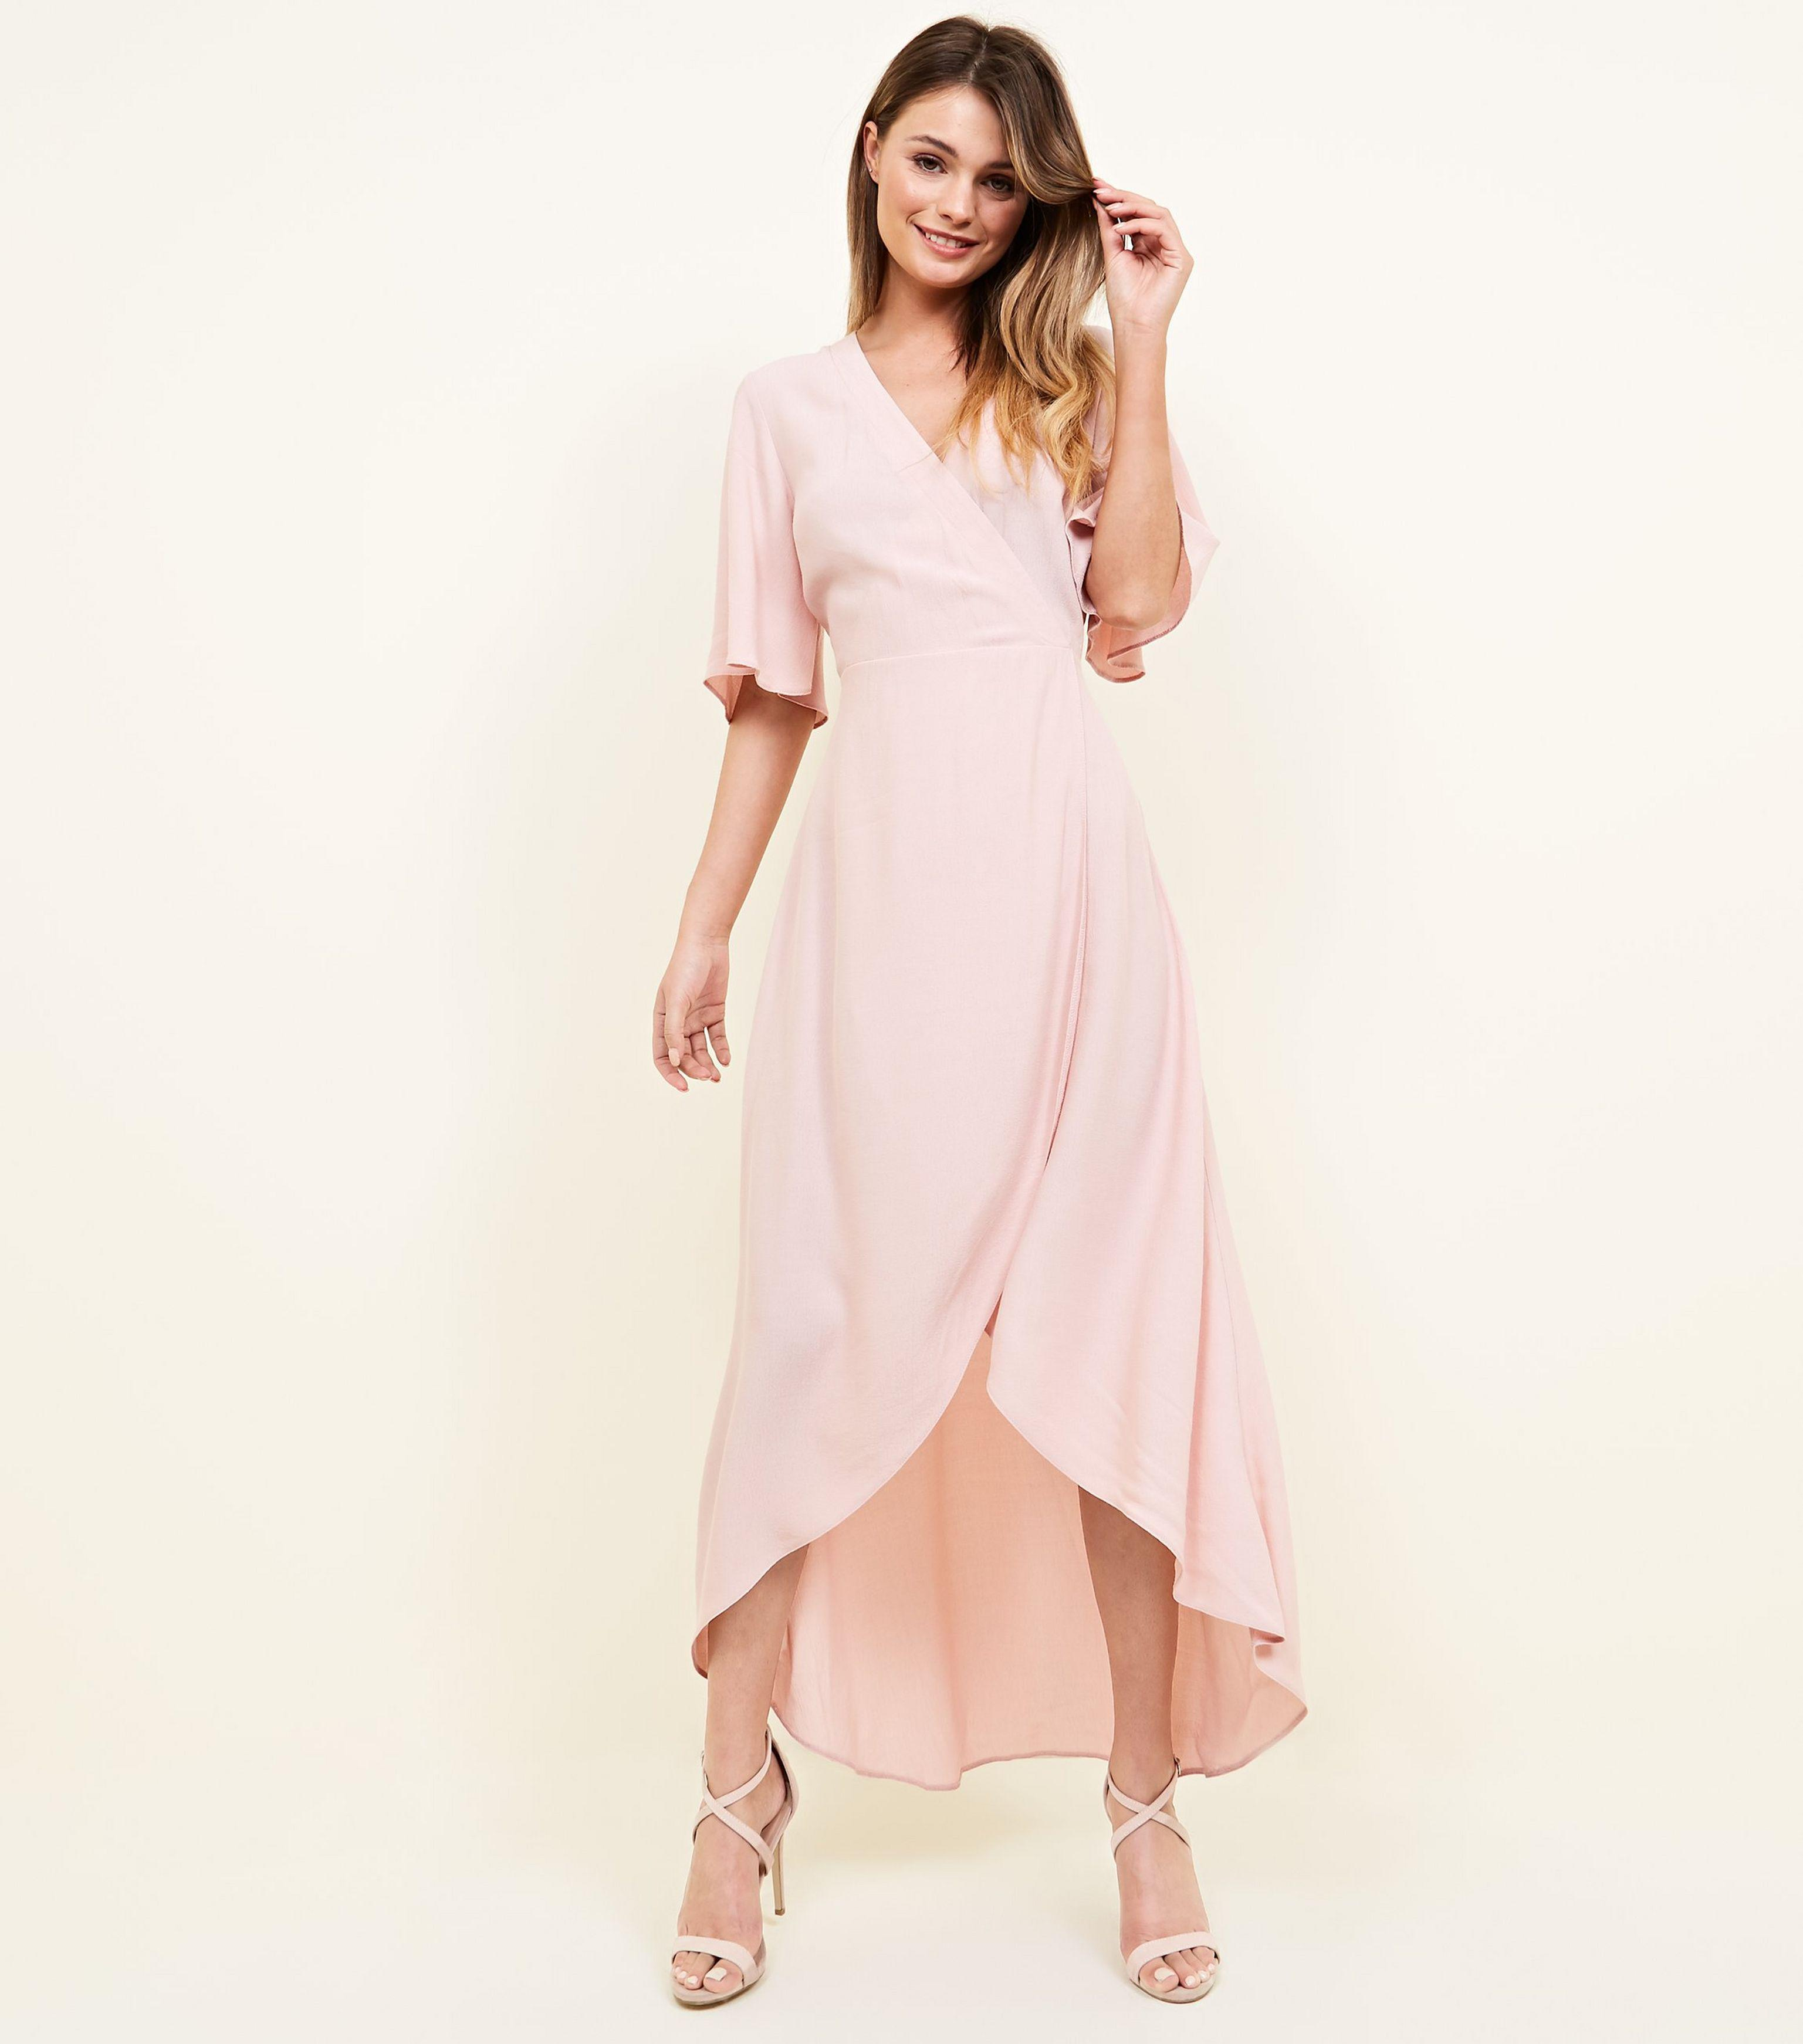 797005fff35 New Look Pale Pink Wrap Front Dip Hem Maxi Dress in Pink - Lyst